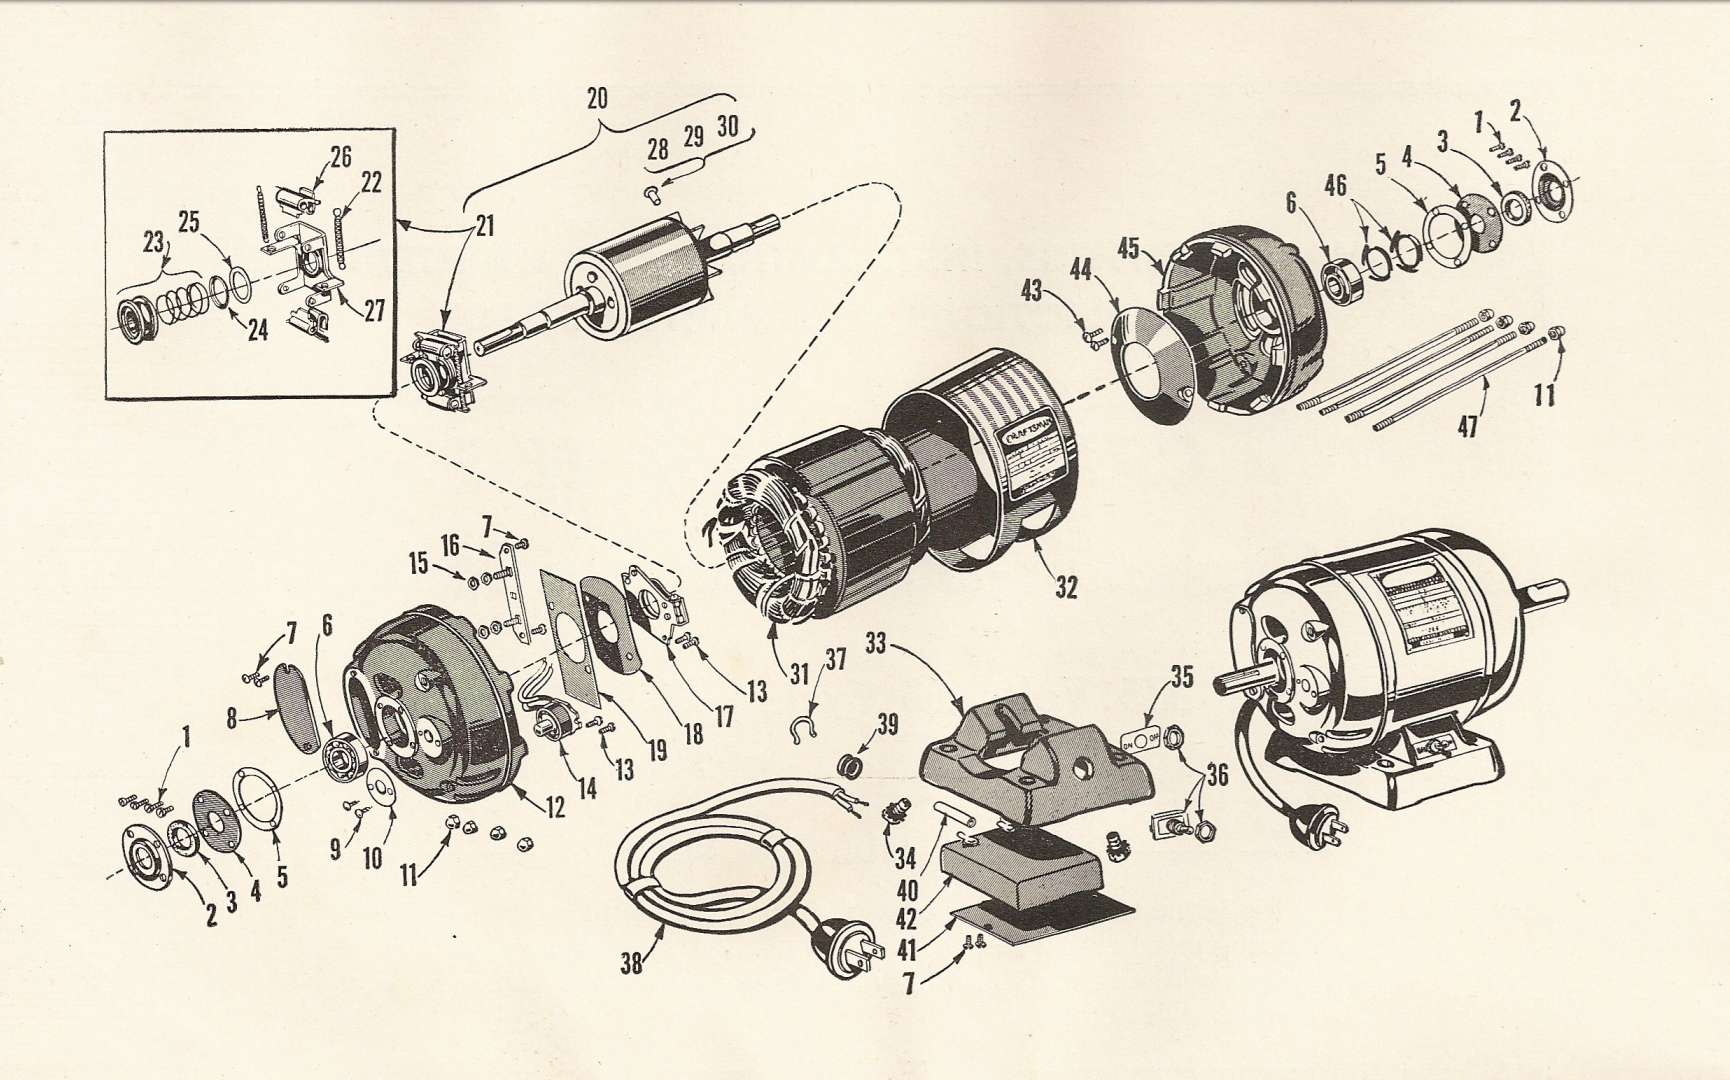 Craftsman 1156962 motor restoration part 2 michael parrish blog craftsman 1156962 12 hp capacitor start electric motor diagram source swarovskicordoba Choice Image